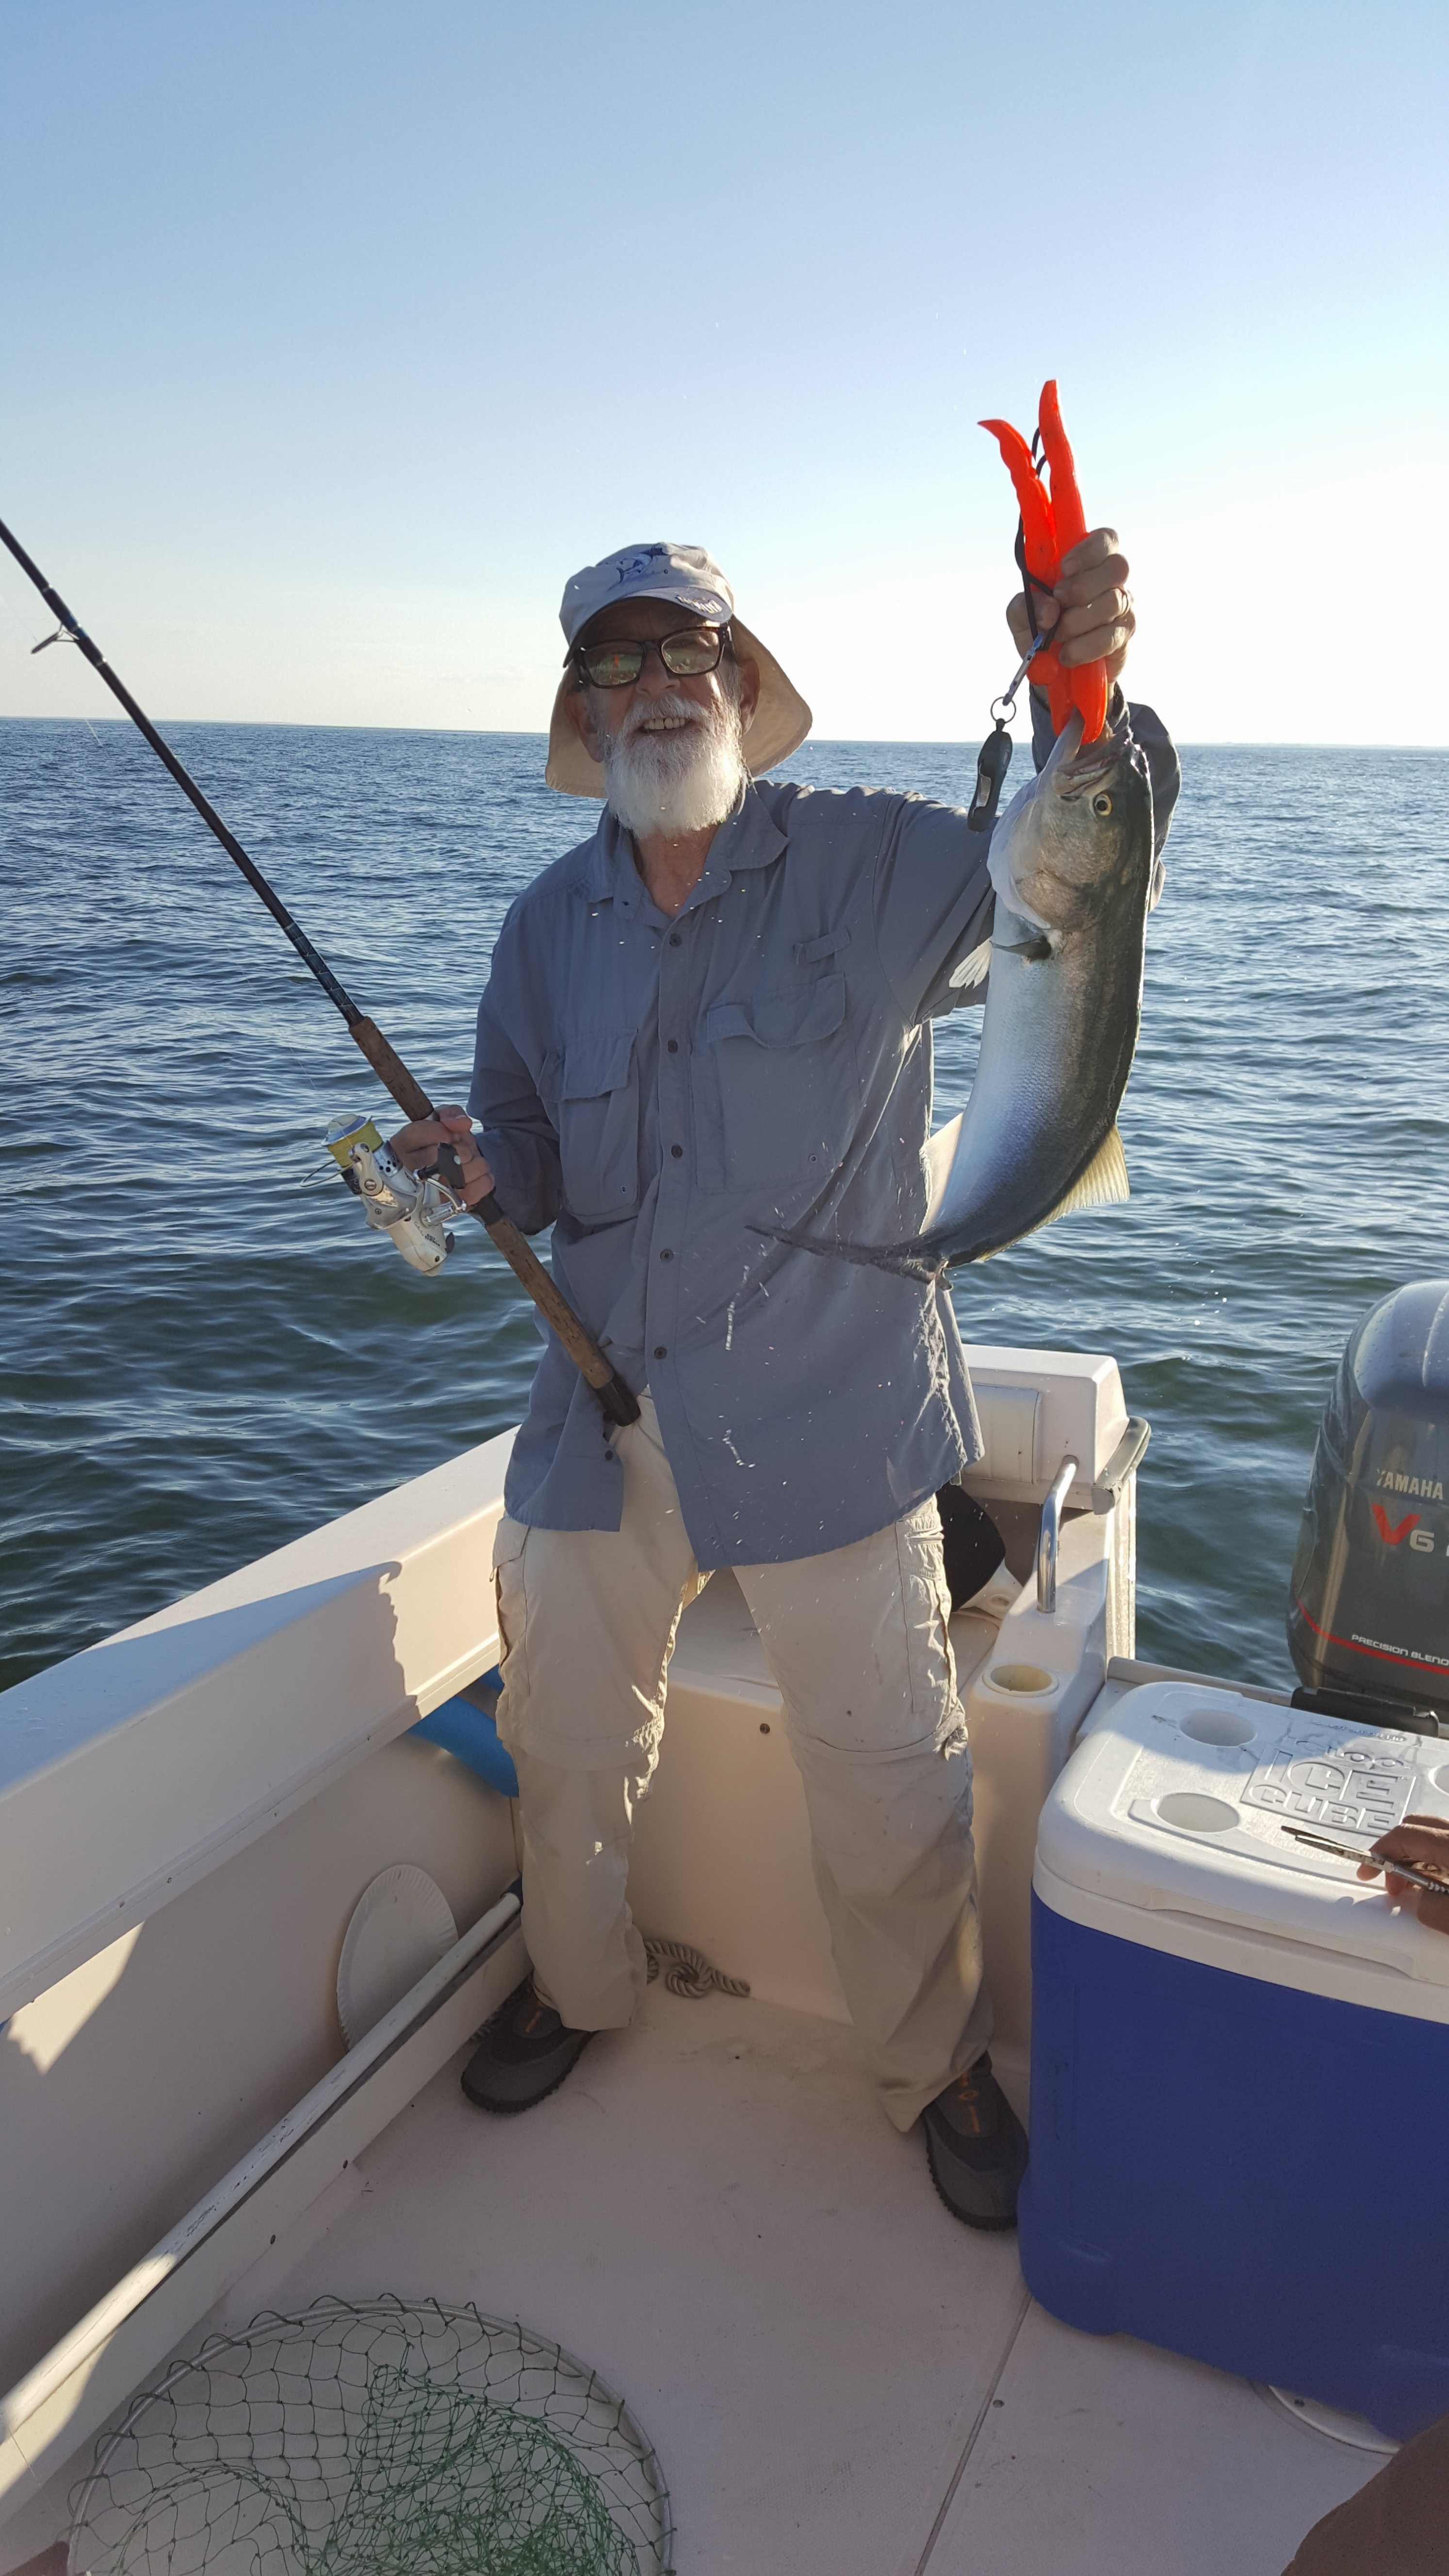 Fishing with my grandfather